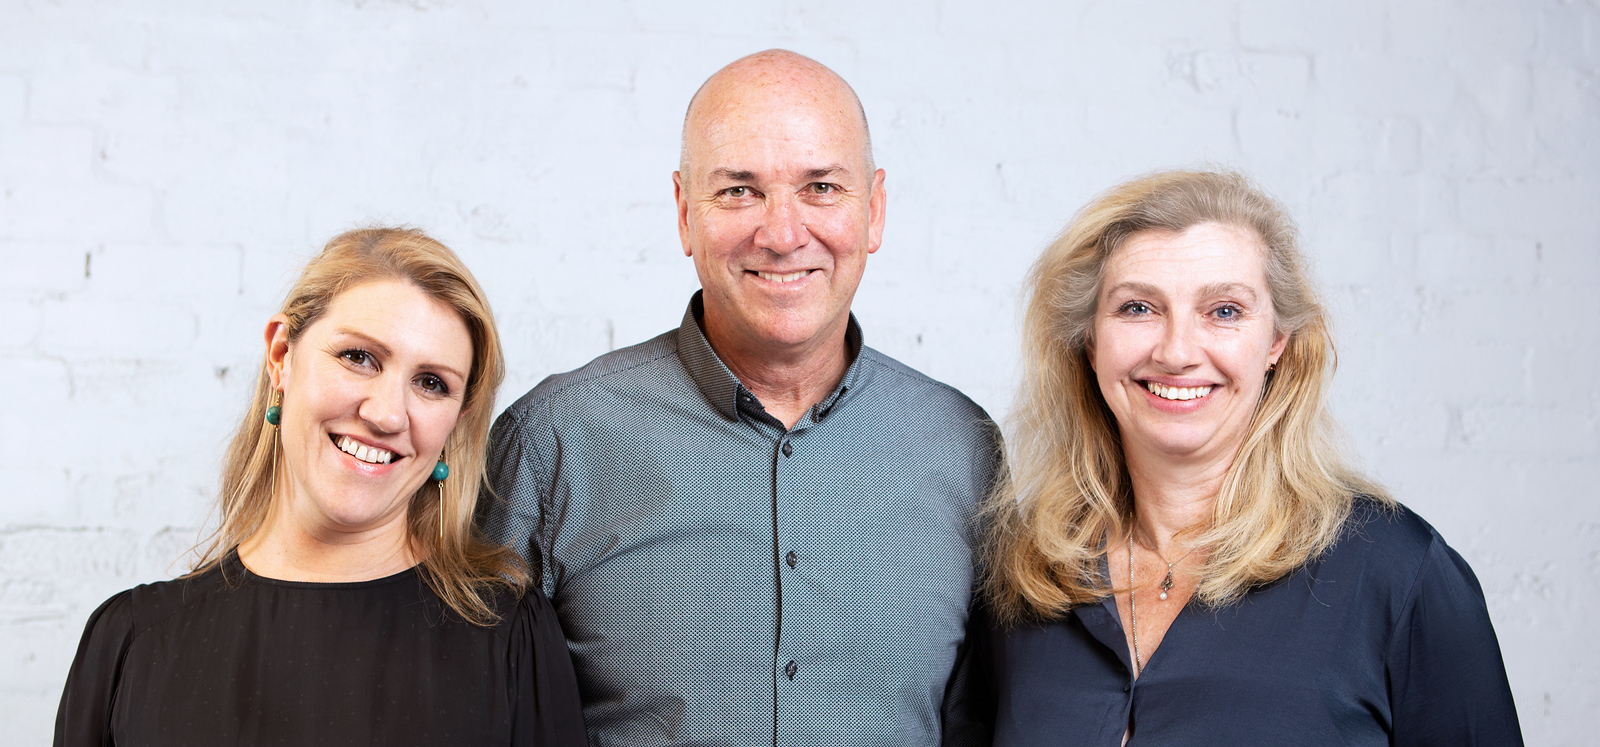 New AFFINITY directors L-R: Giorgia Butler, Russell Smyth, Lisa Christie  (photo credit: AFFINITY)